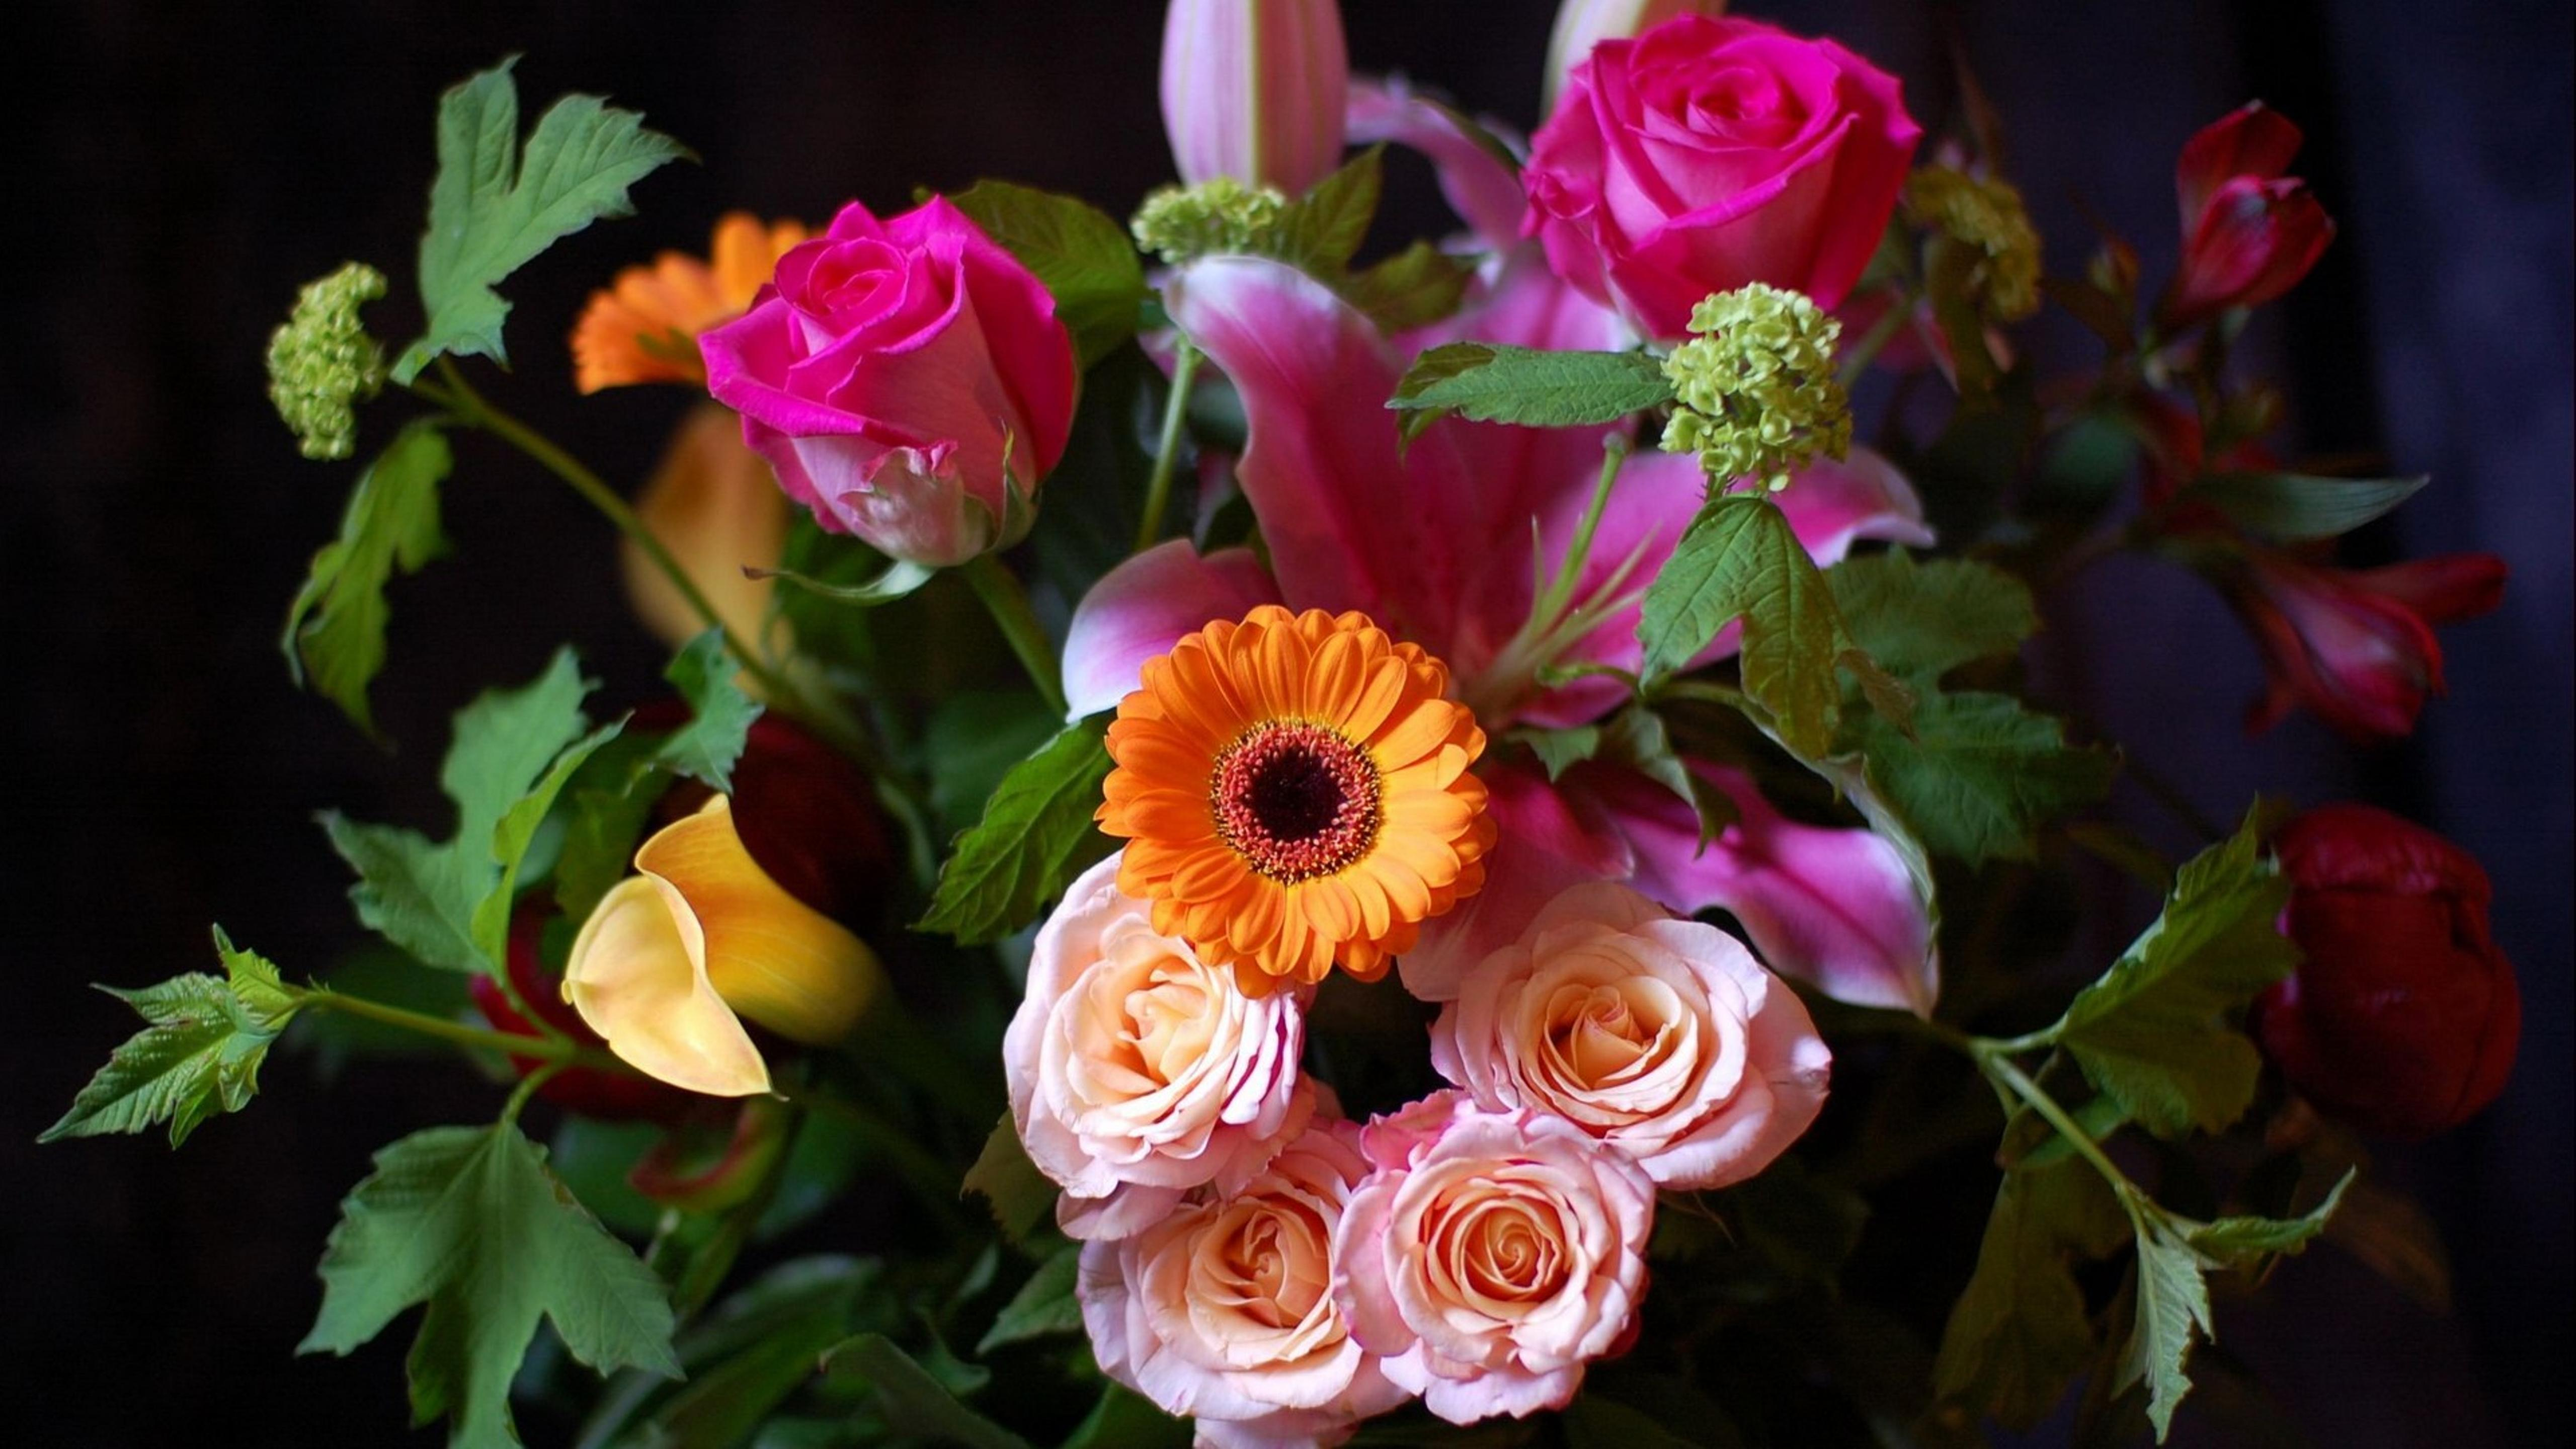 Beautiful Bouquet With Many Colorful Flowers Wallpaper Download 5120x2880